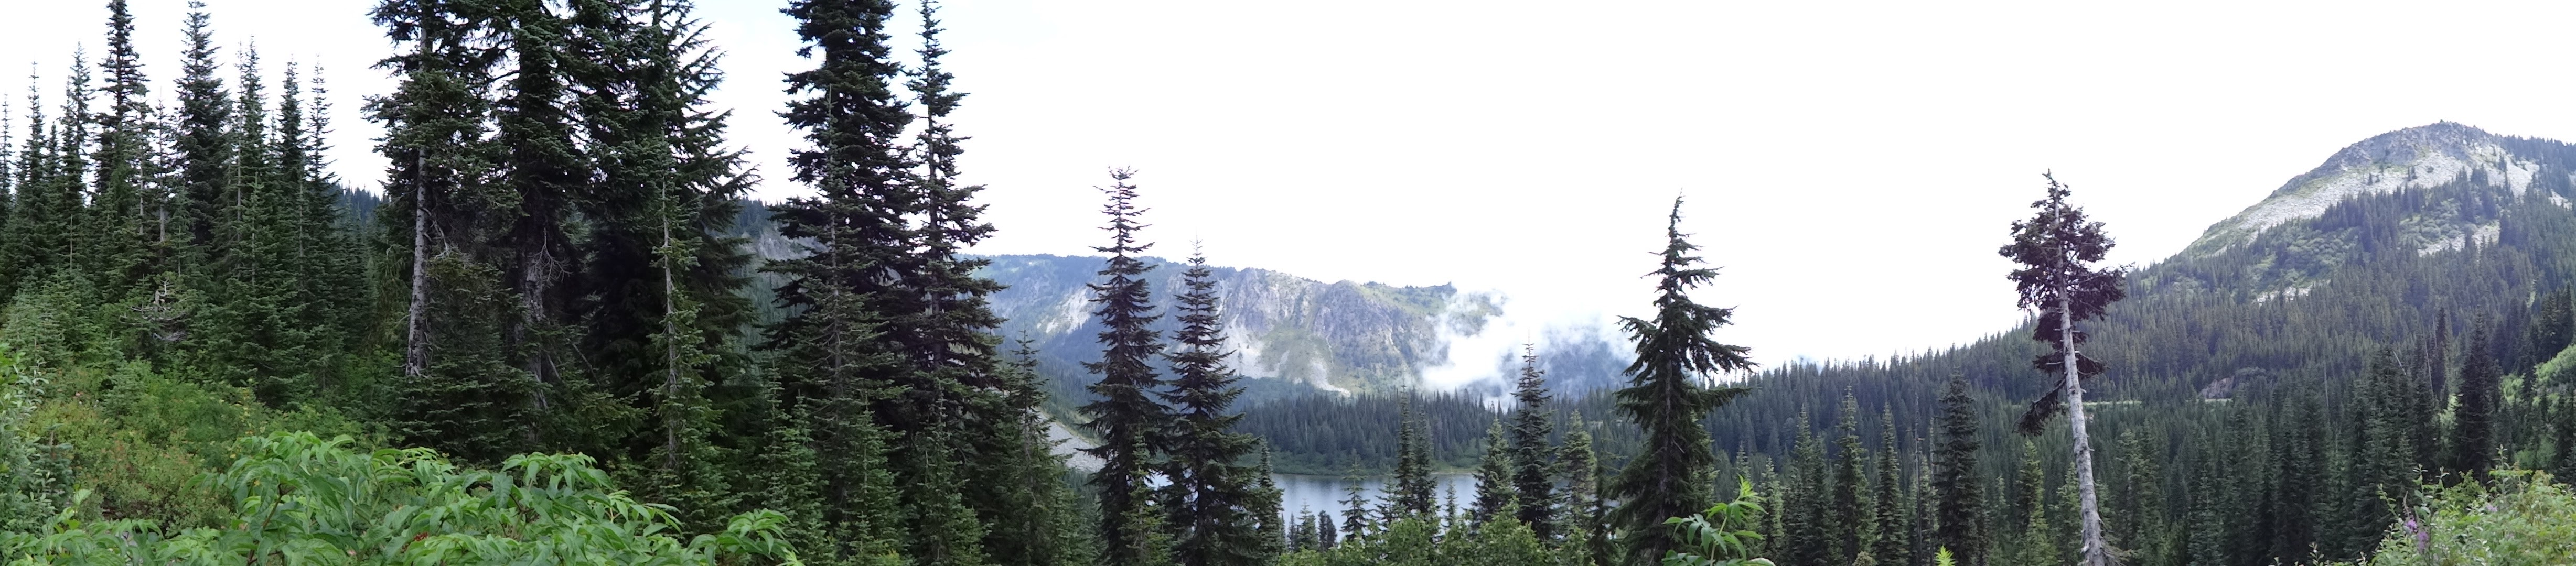 Metaphor for research disguised as a fog-obscured view of Mt. Rainier National Park